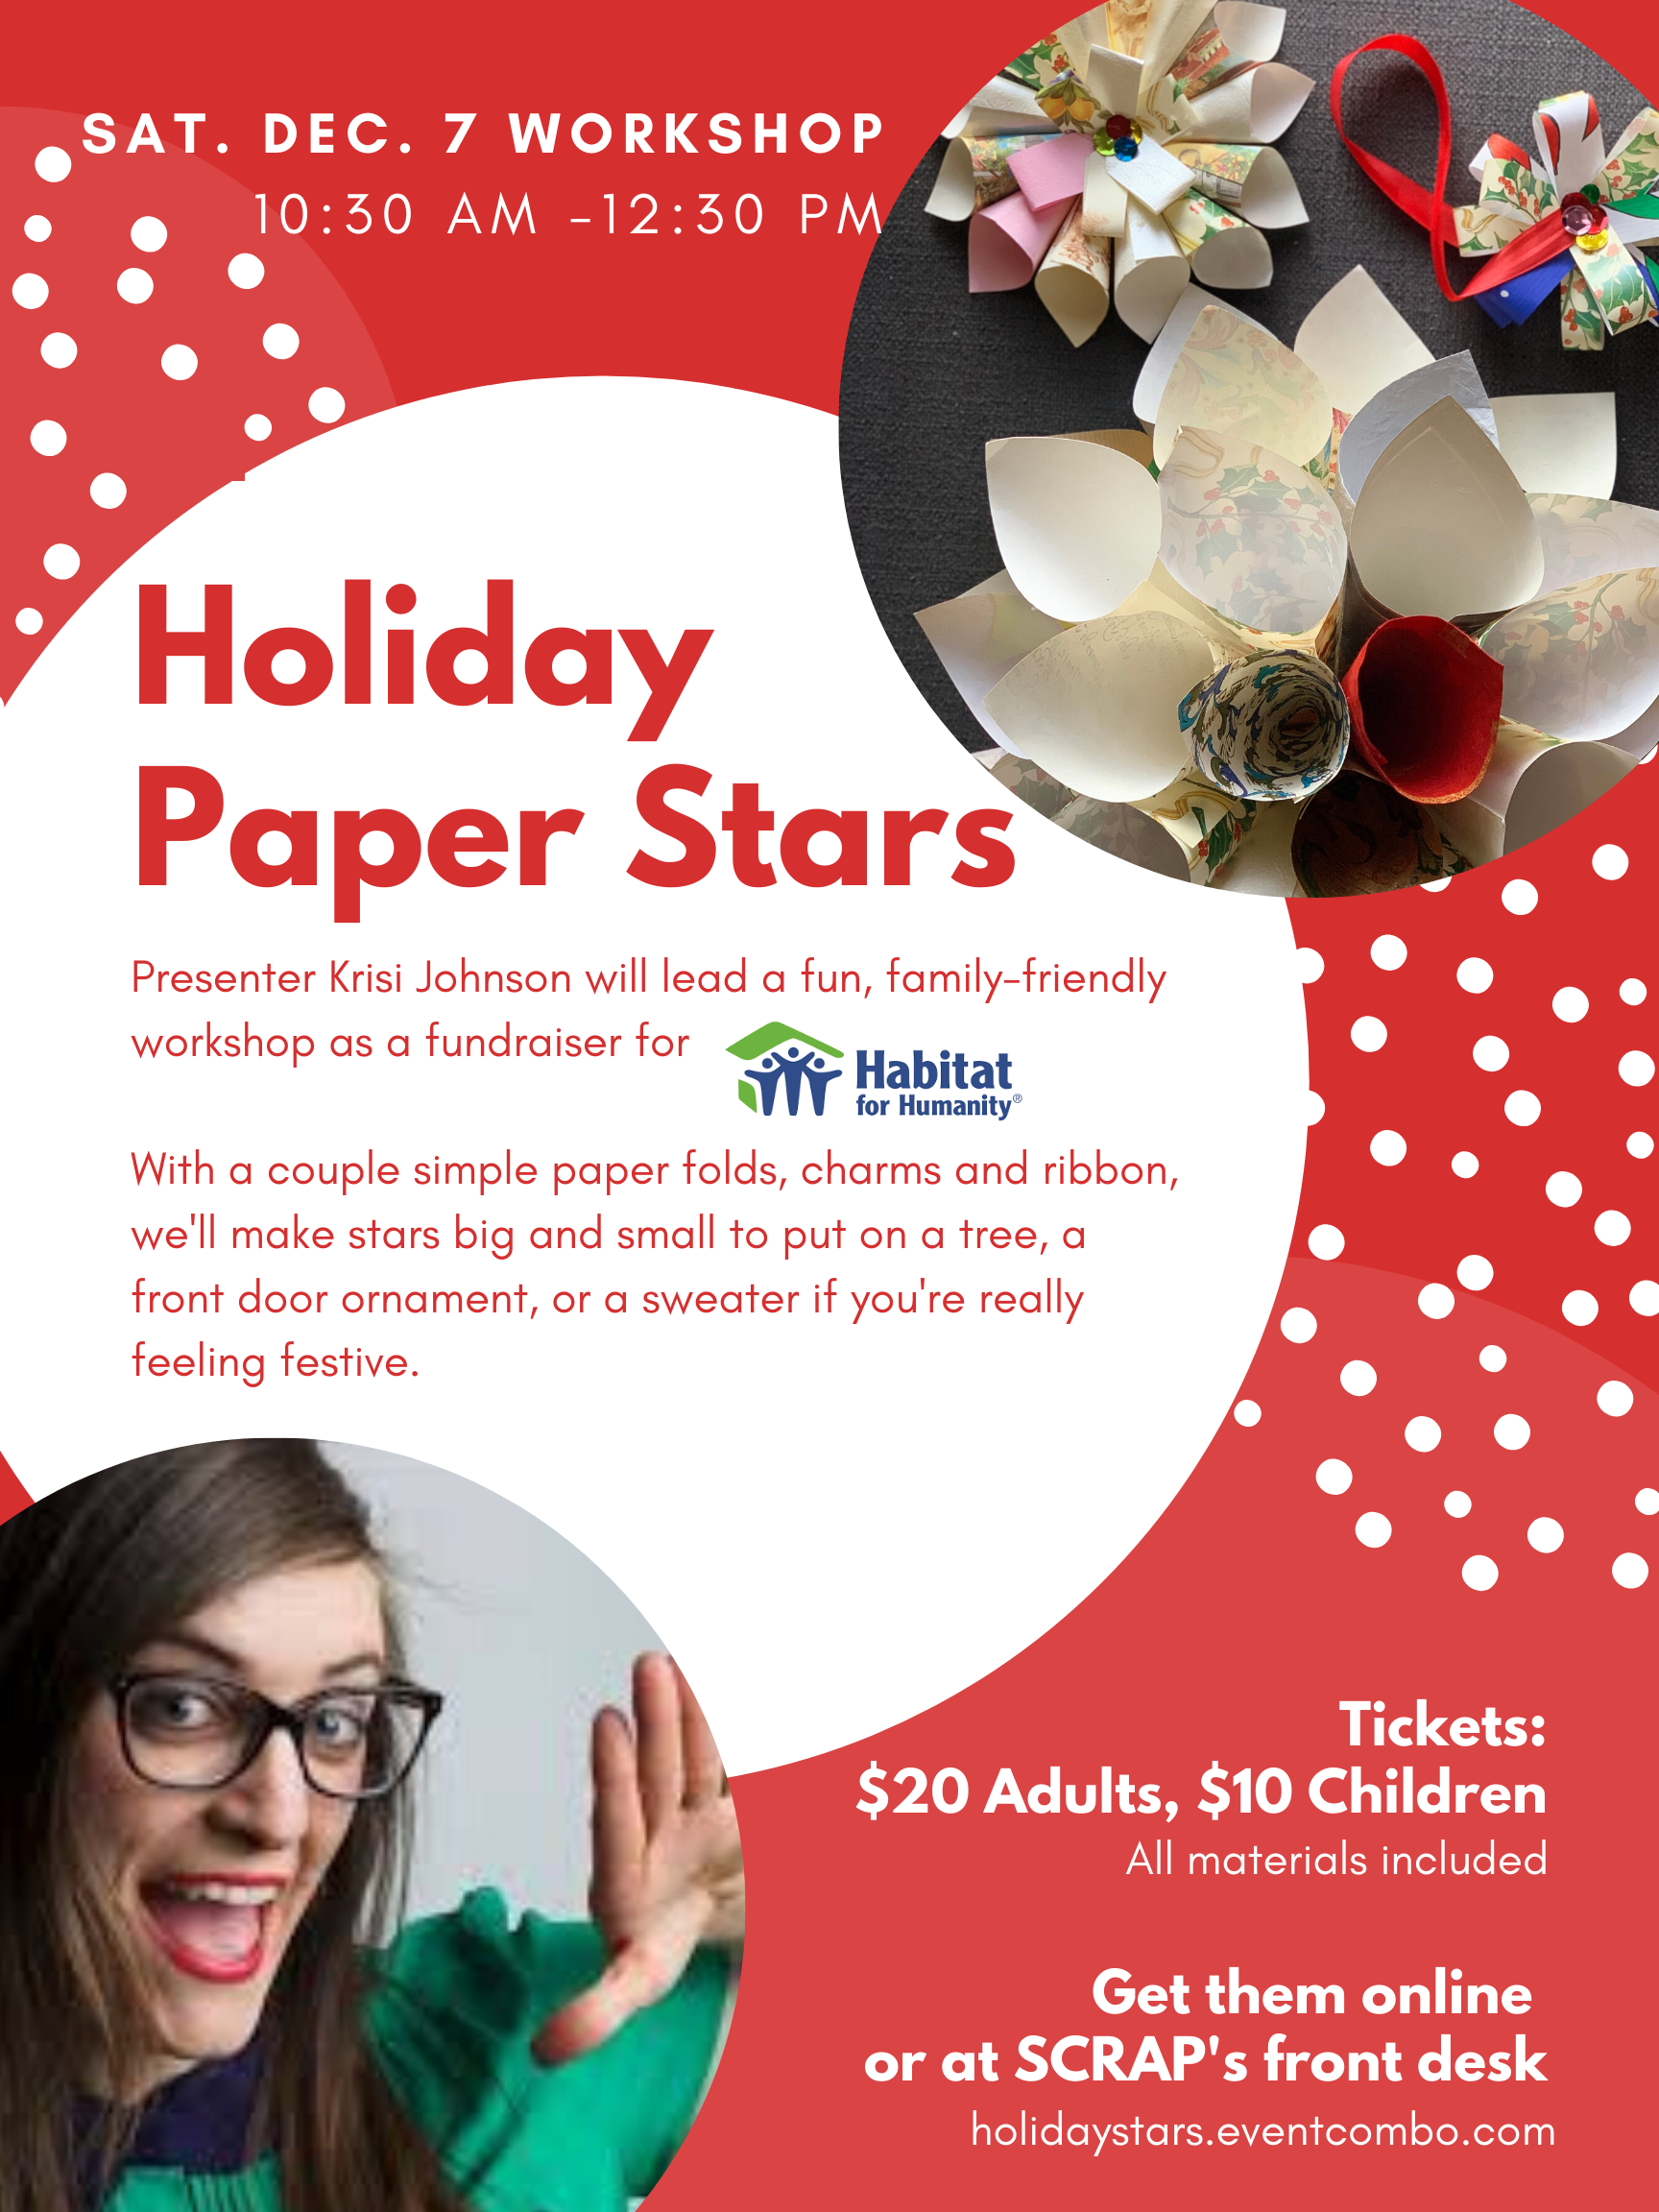 Holiday Paper Stars:  Creative Reuse Workshop & Fundraiser for Habitat for Humanity